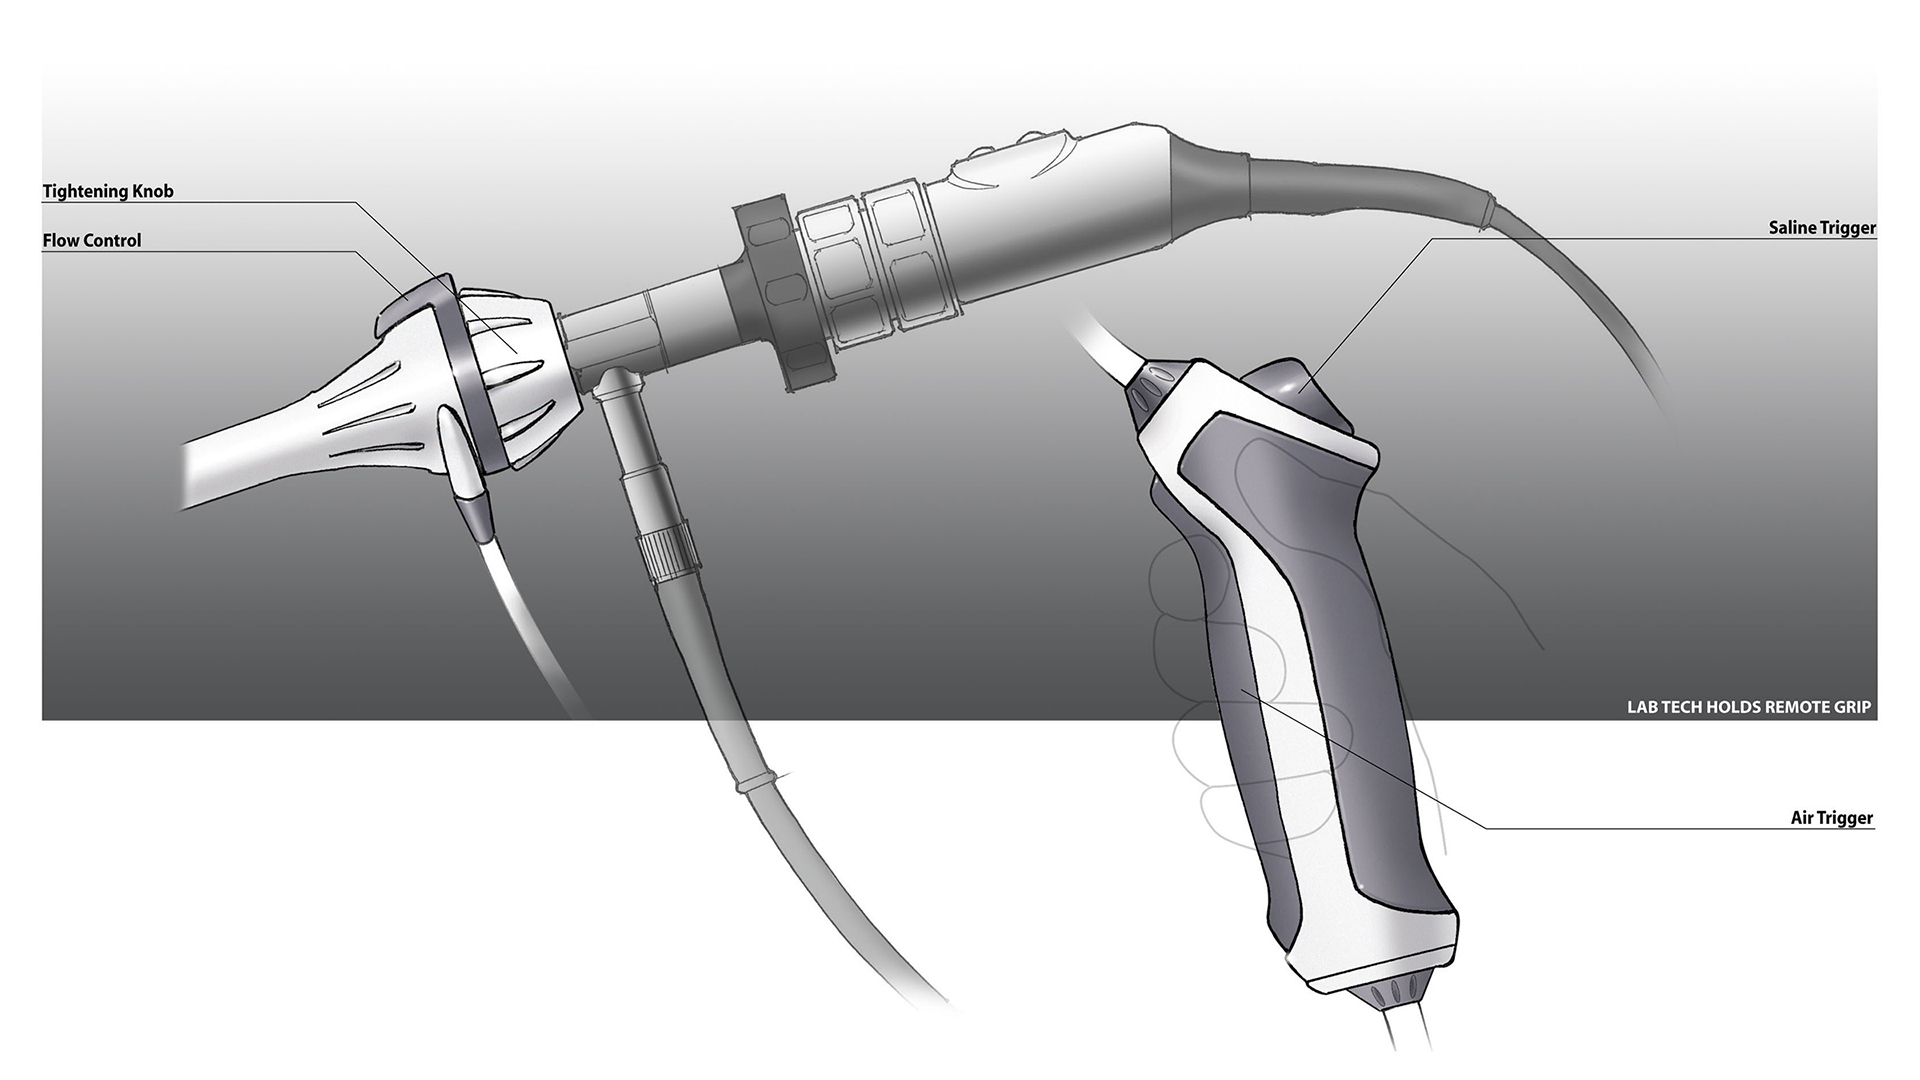 priority_designs_medical_laparoscopic_product_design_and_engineering_002